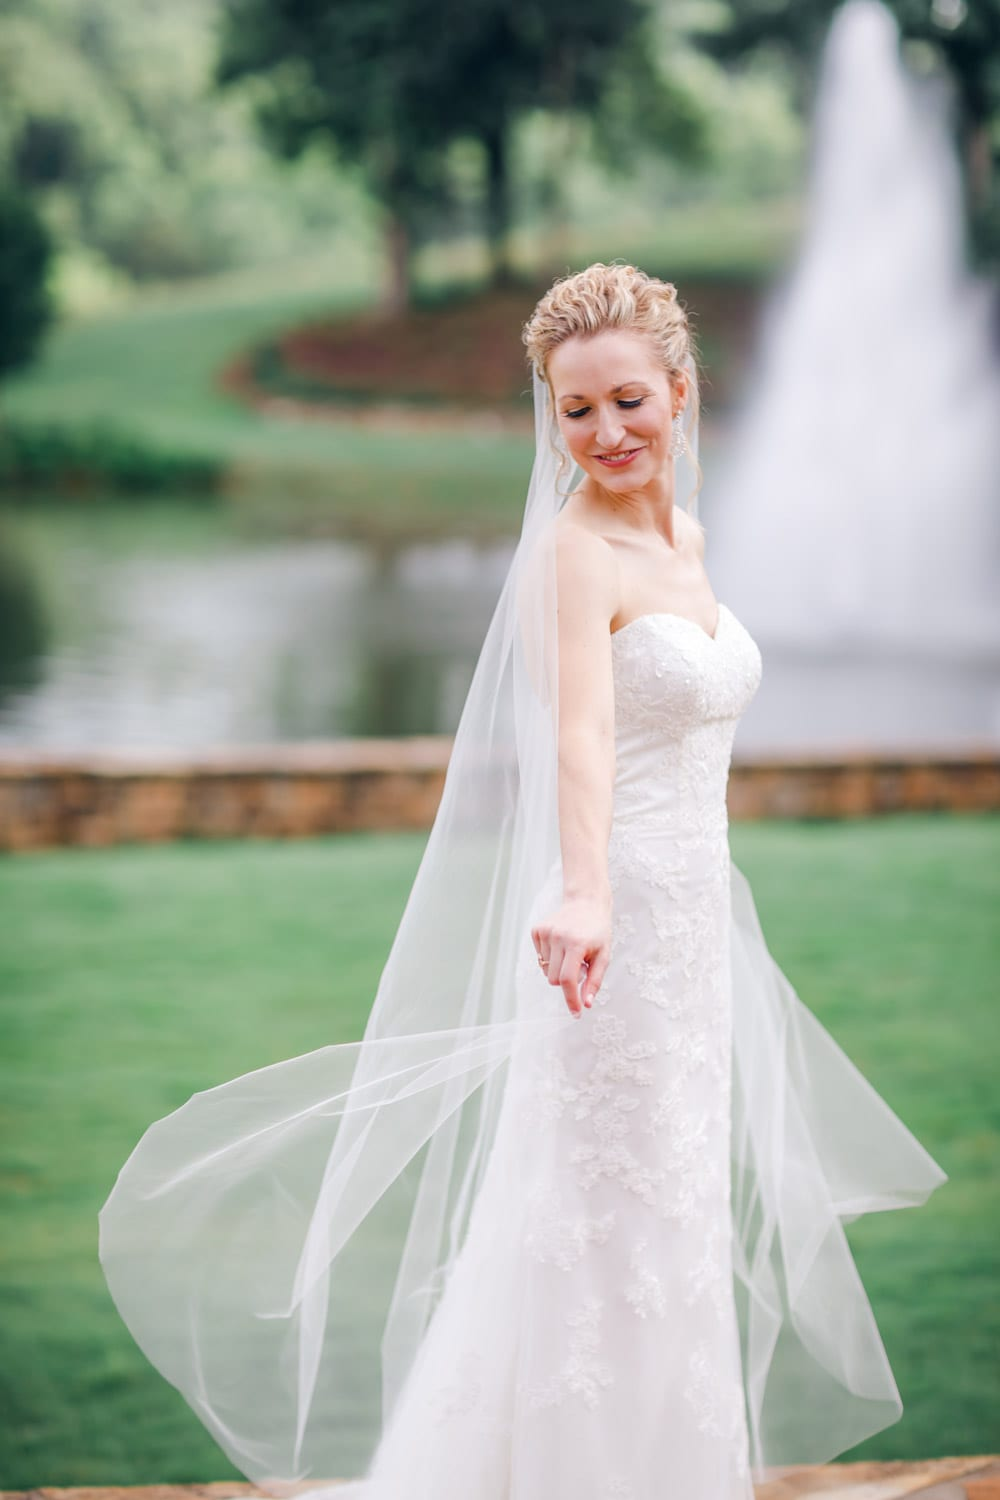 Bride twirls outside in front of fountain